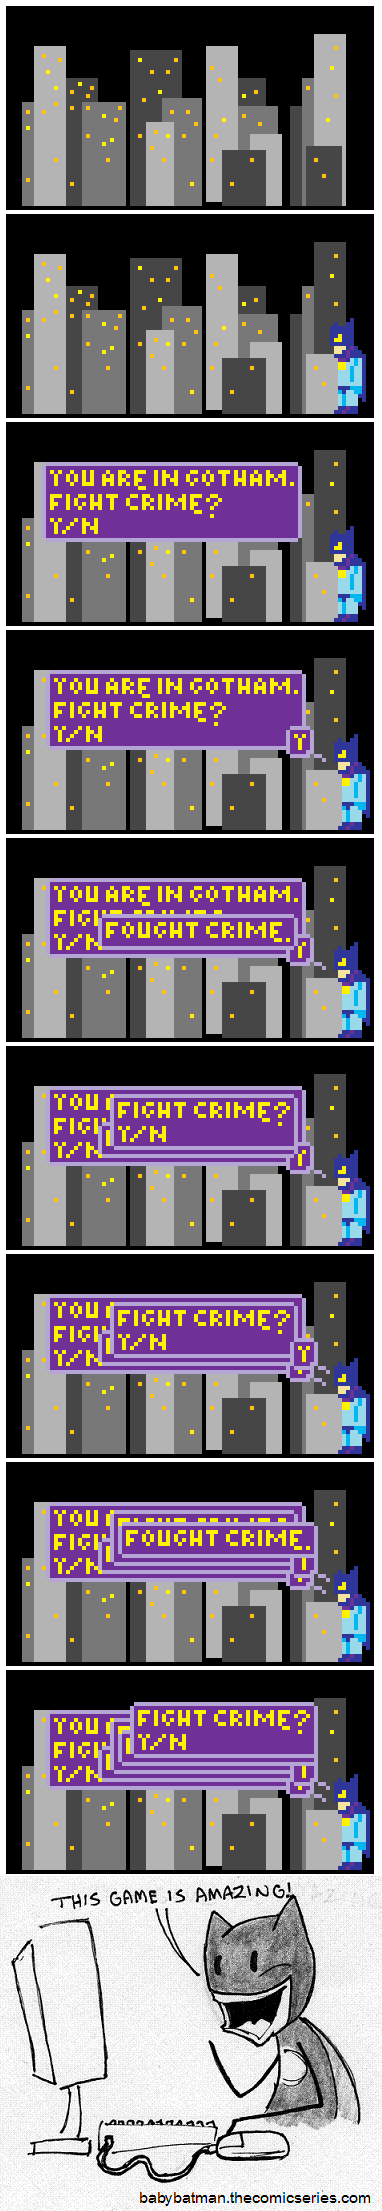 The game based on the webcomic based on the films based on the comic book characters